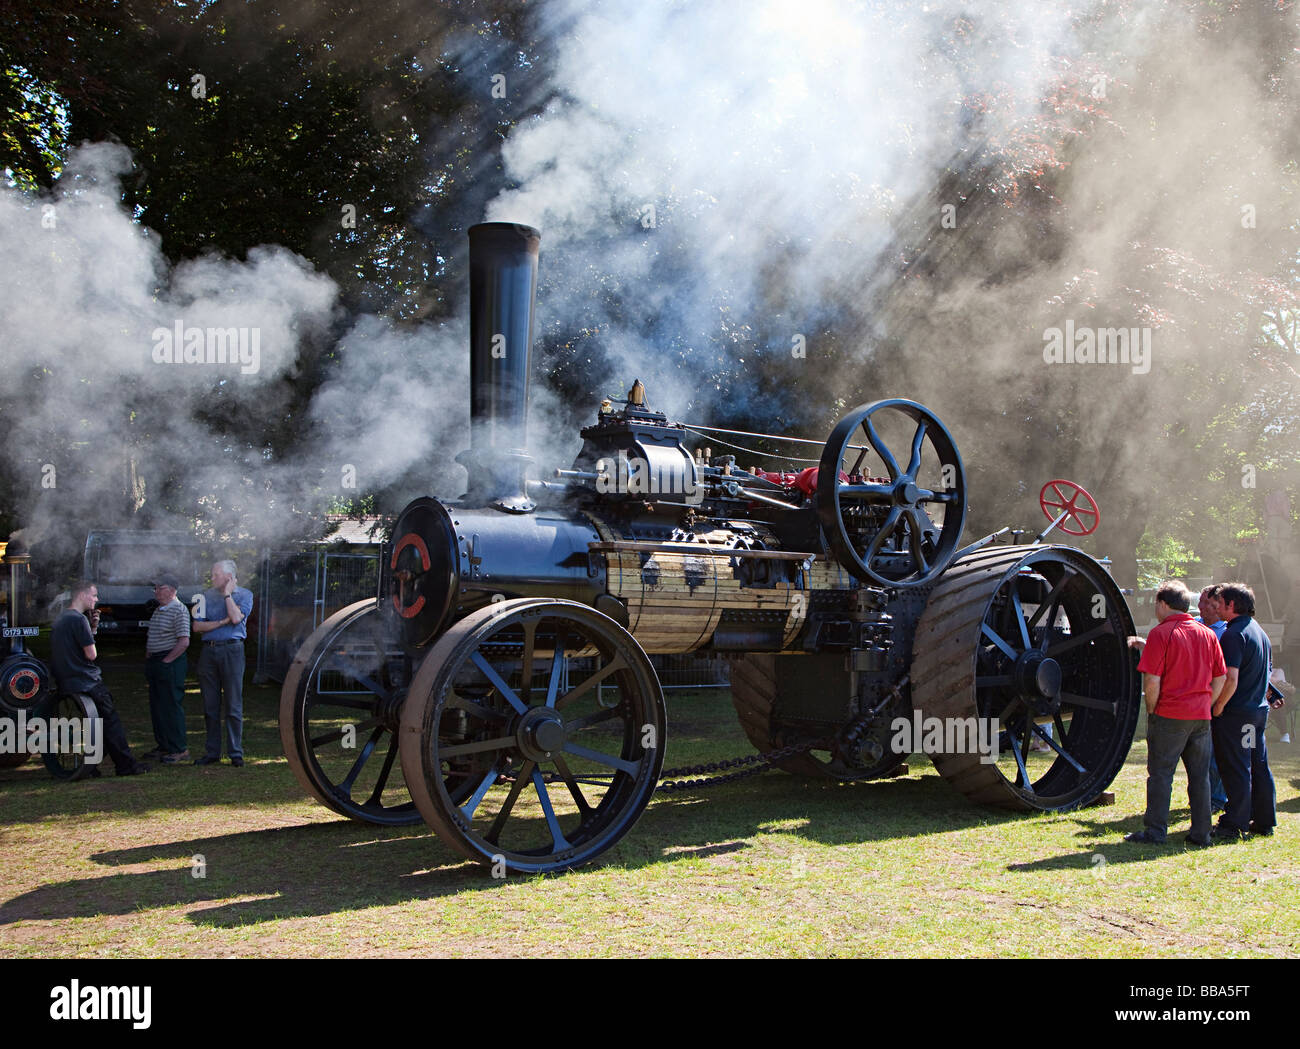 Traction engine at steam fair Abergavenny Wales UK - Stock Image